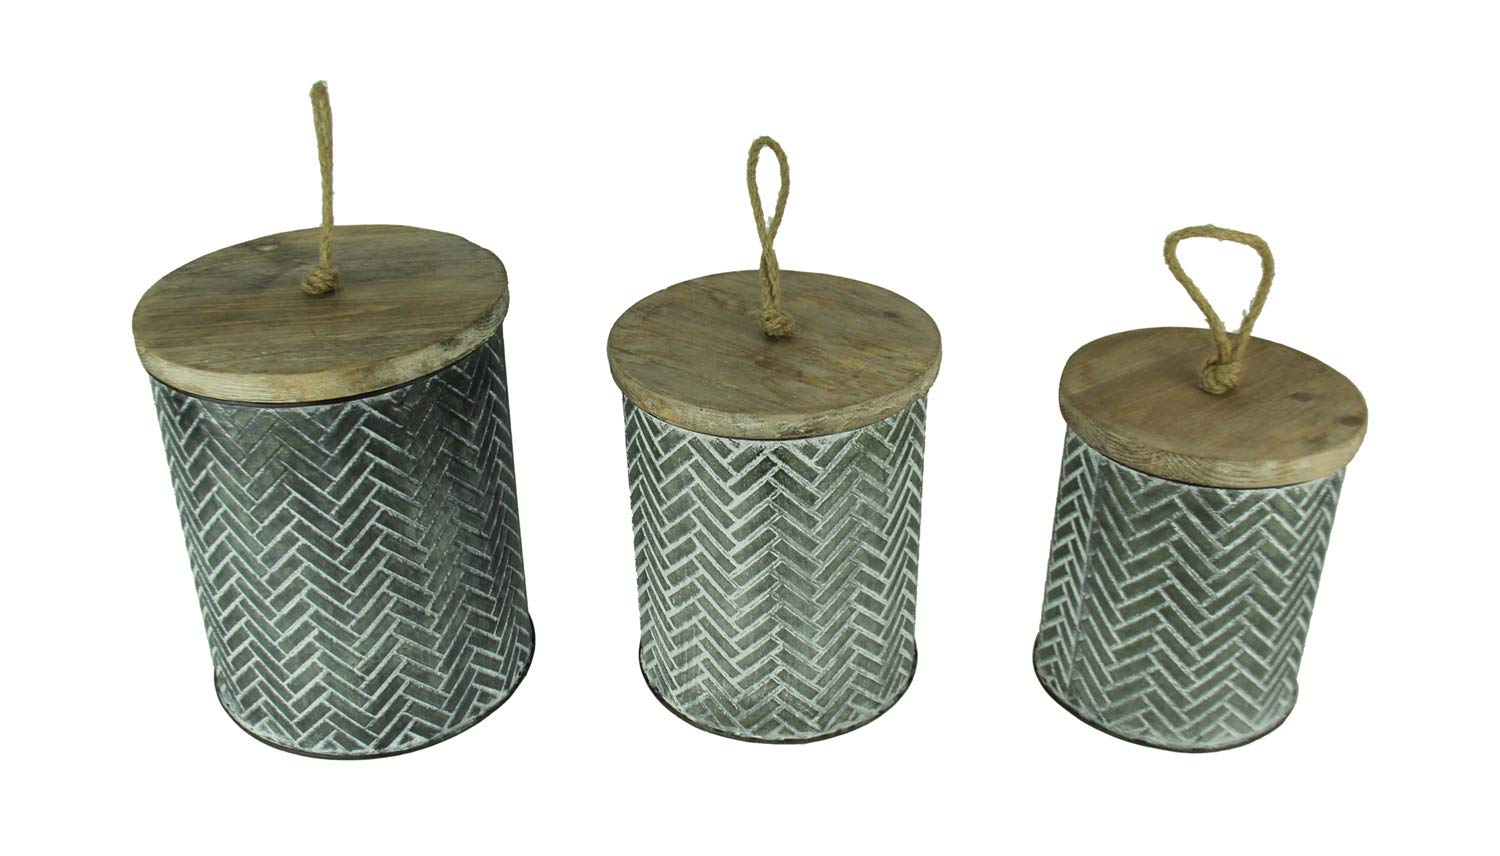 PD Home & Garden Zigzag Embossed Tin Kitchen Canisters 3 Piece Set